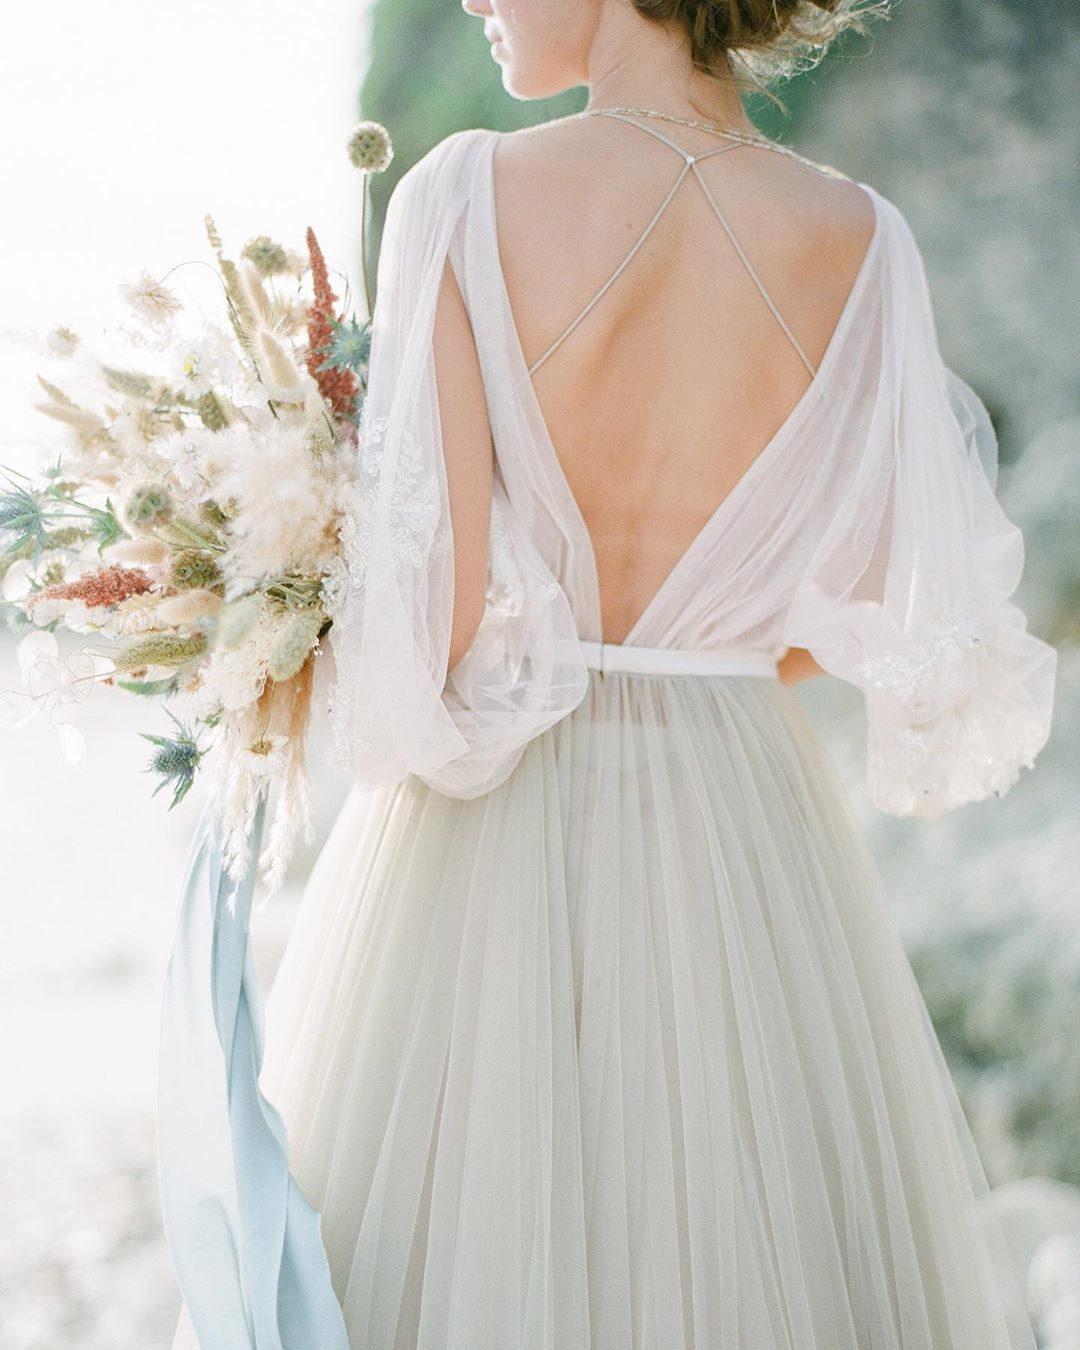 Our recent feature at @weddingsparrow is a tribute to dreaminess